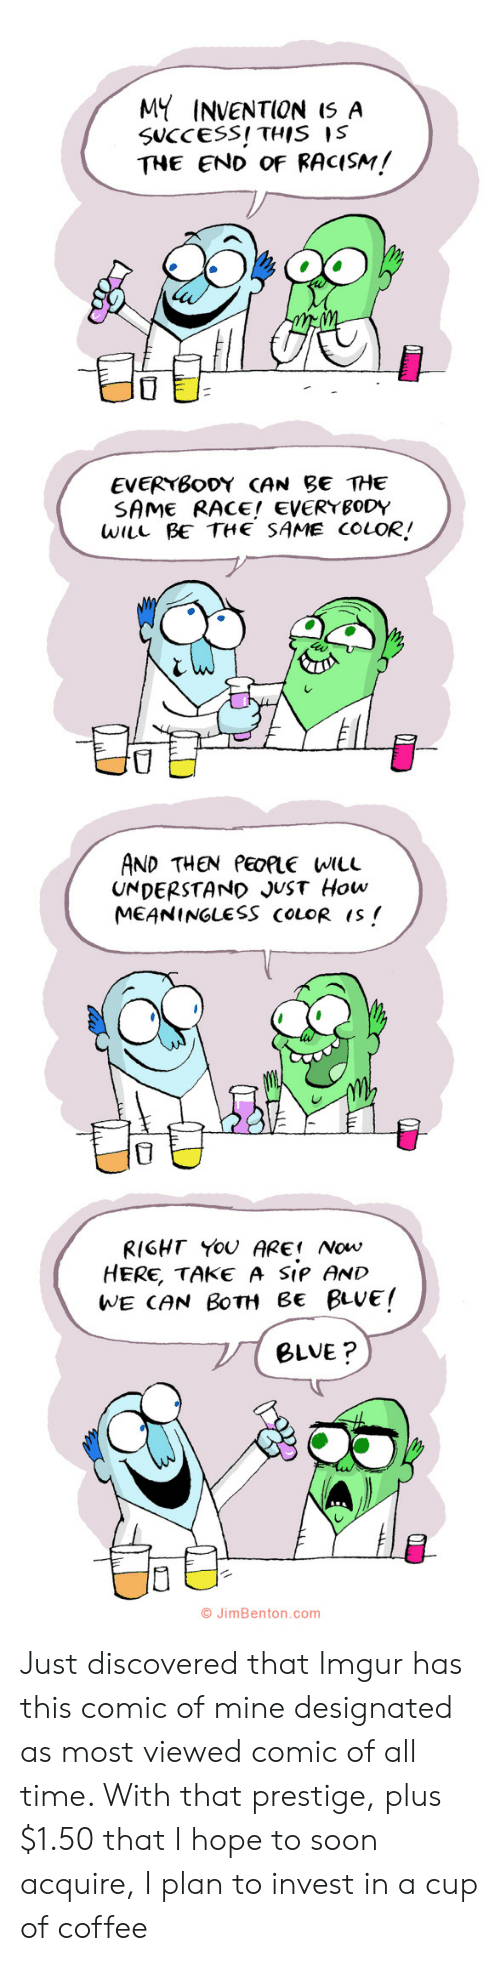 Plus: MY INVENTION I5 A  SUCCESS! THIS IS  THE END OF RACISM!  EVERYBODY CAN BE THE  SAME RACE! EVERYBODY  WILL BE THE SAME COLOR!  AND THEN PEOPLE WILL  UNDERSTAND JUST How  MEANINGLESS COLOR IS  RIGHT YOU ARE Now  HERE, TAKE A SIP AND  WE CAN BOTH Be BLUE!  BLVE?  O JimBenton.com  י Just discovered that Imgur has this comic of mine designated as most viewed comic of all time. With that prestige, plus $1.50 that I hope to soon acquire, I plan to invest in a cup of coffee